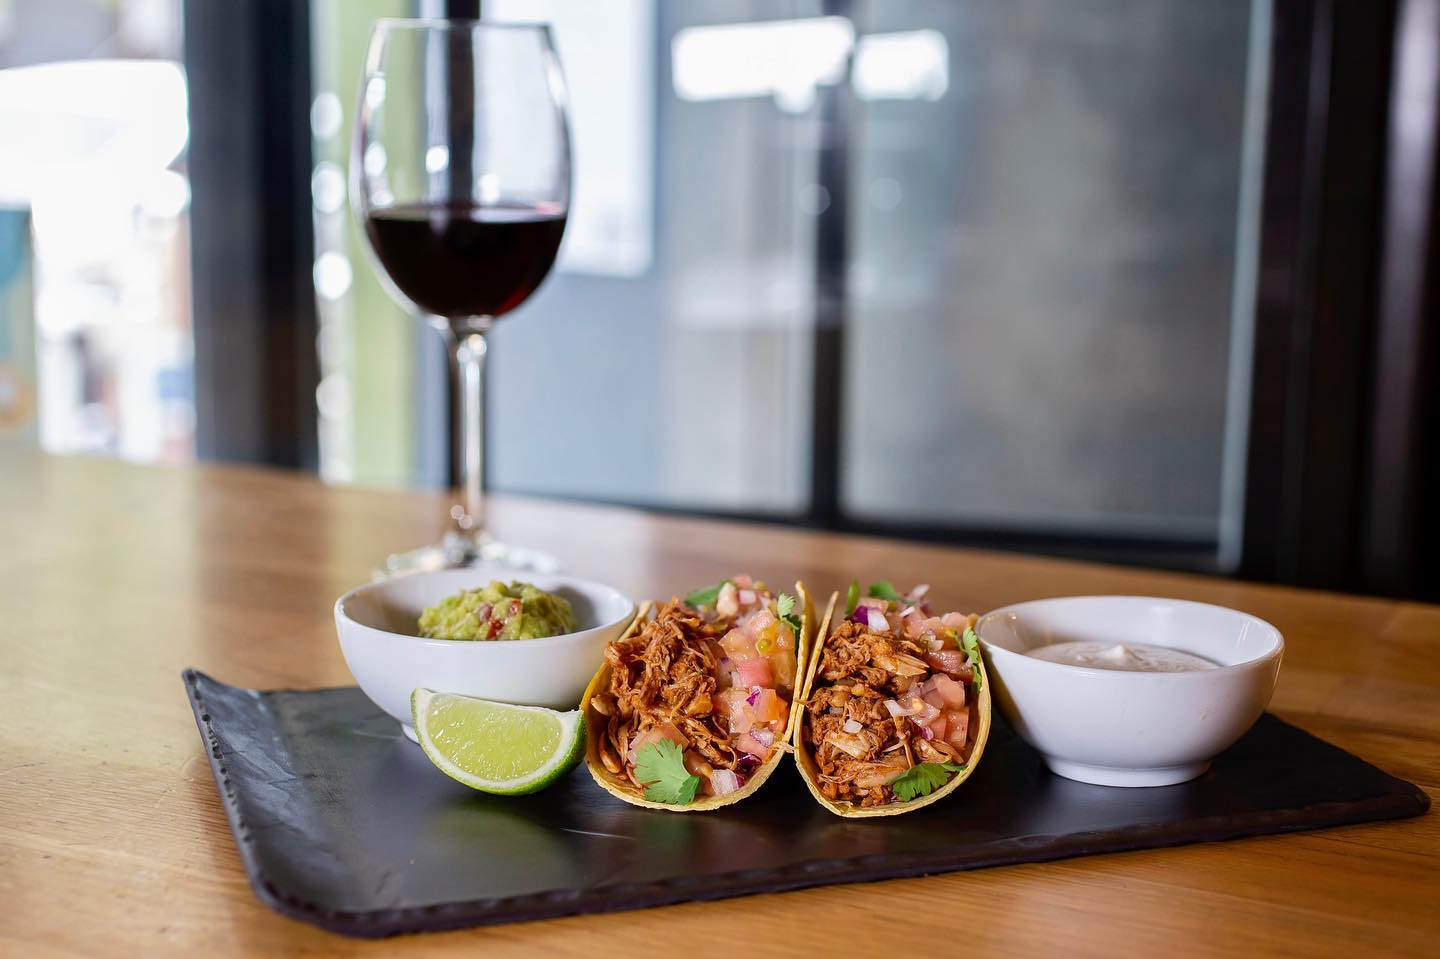 jackfruit-tacos-on-black-slate-on-restaurant-table-with-glass-of-red-wine-restaurante-copenhagen